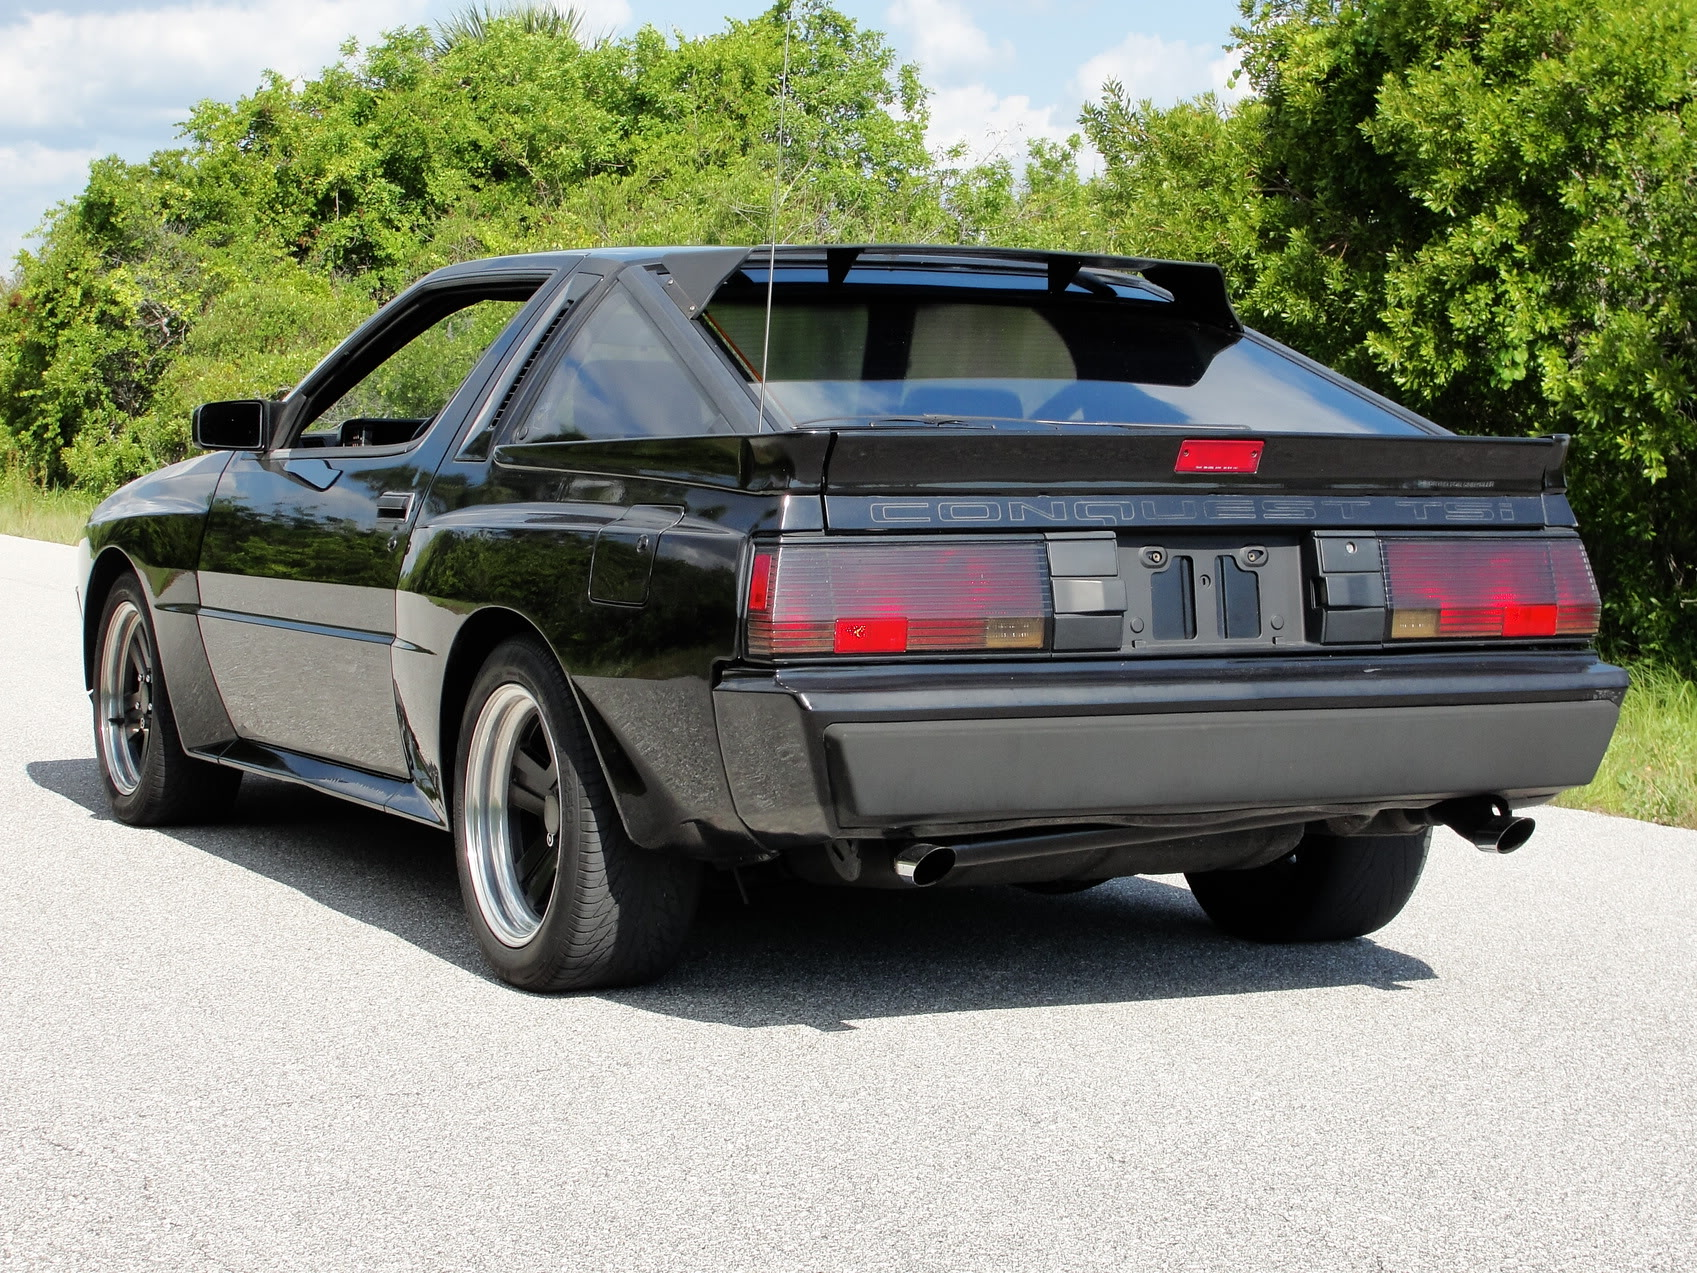 Plymouth Conquest #10